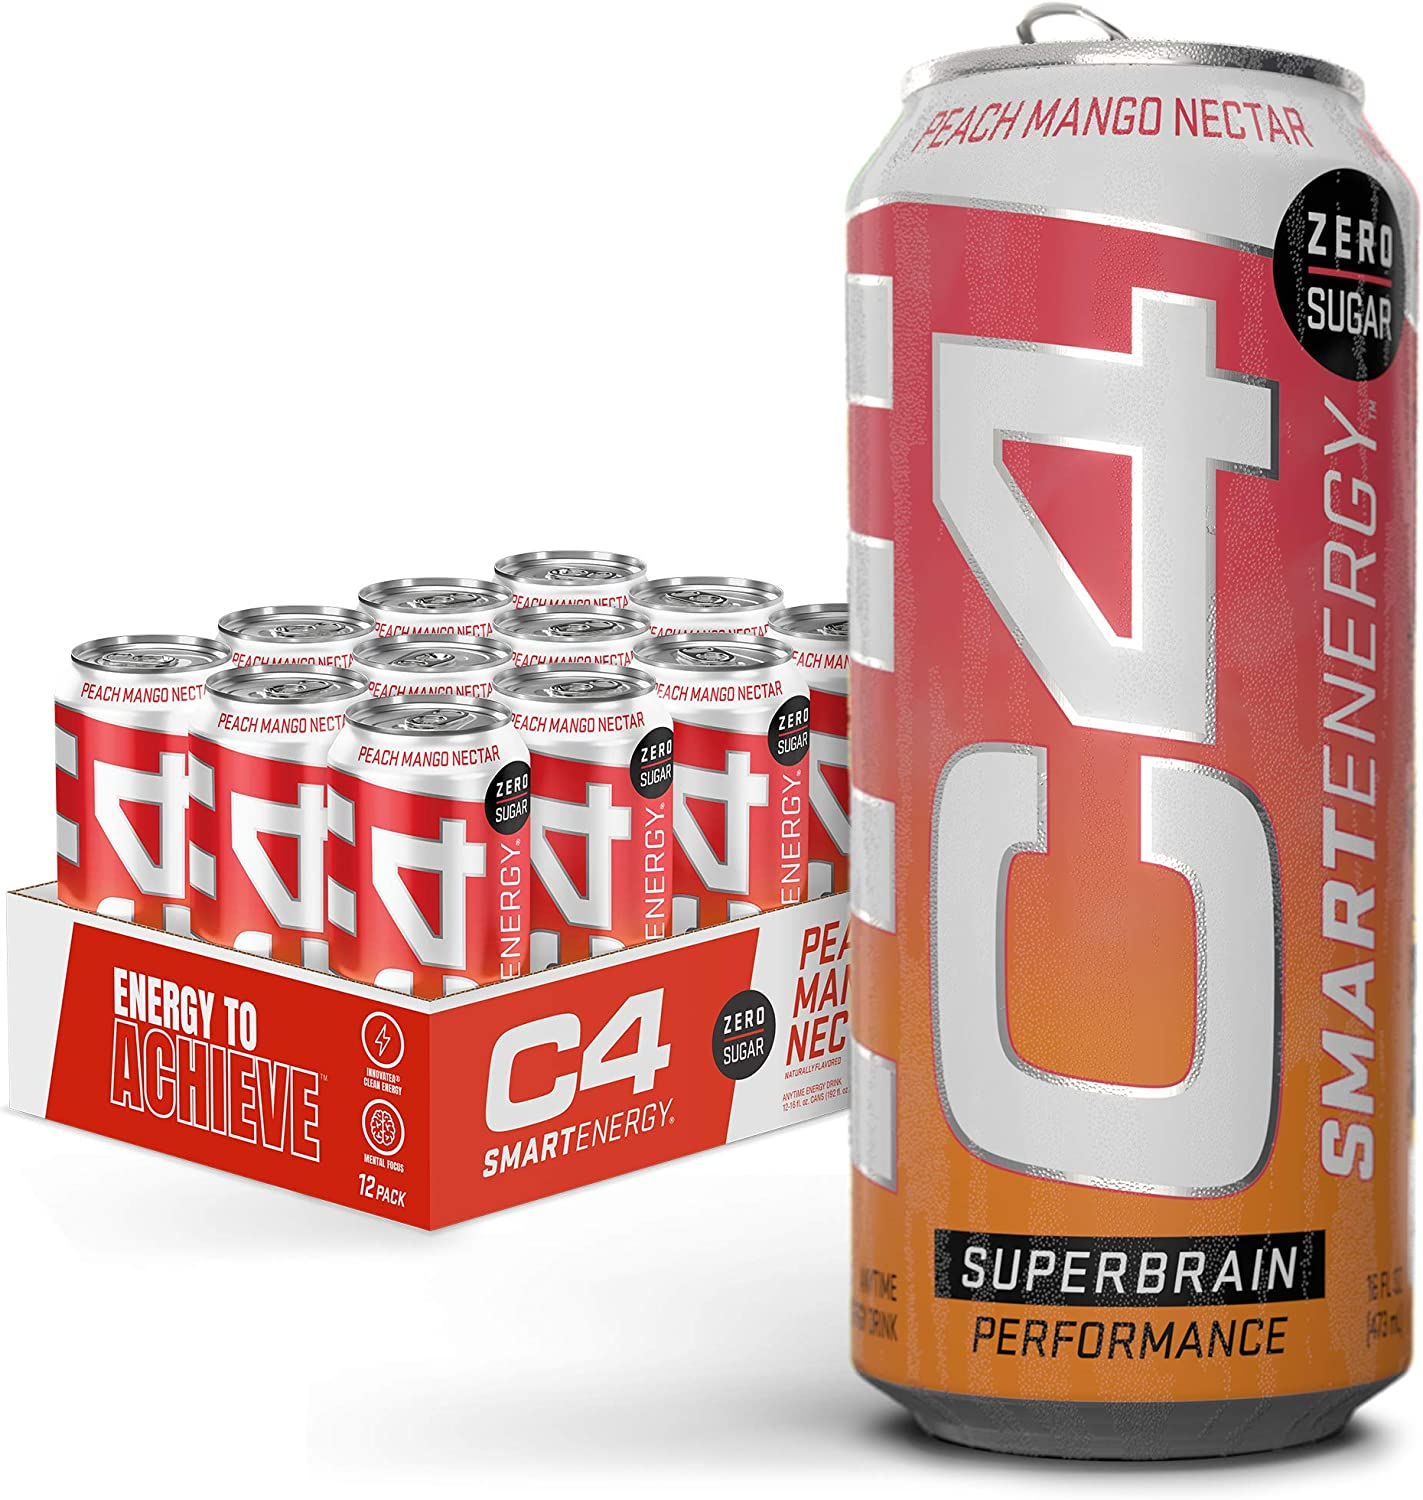 Cellucor C4 Smart Energy Sugar Free Sparkling Energy Drink Peach Mango Nectar   Performance Fuel & Nootropic Brain Booster Supplement with No Artificial Colors or Dyes   16oz (Pack of 12)